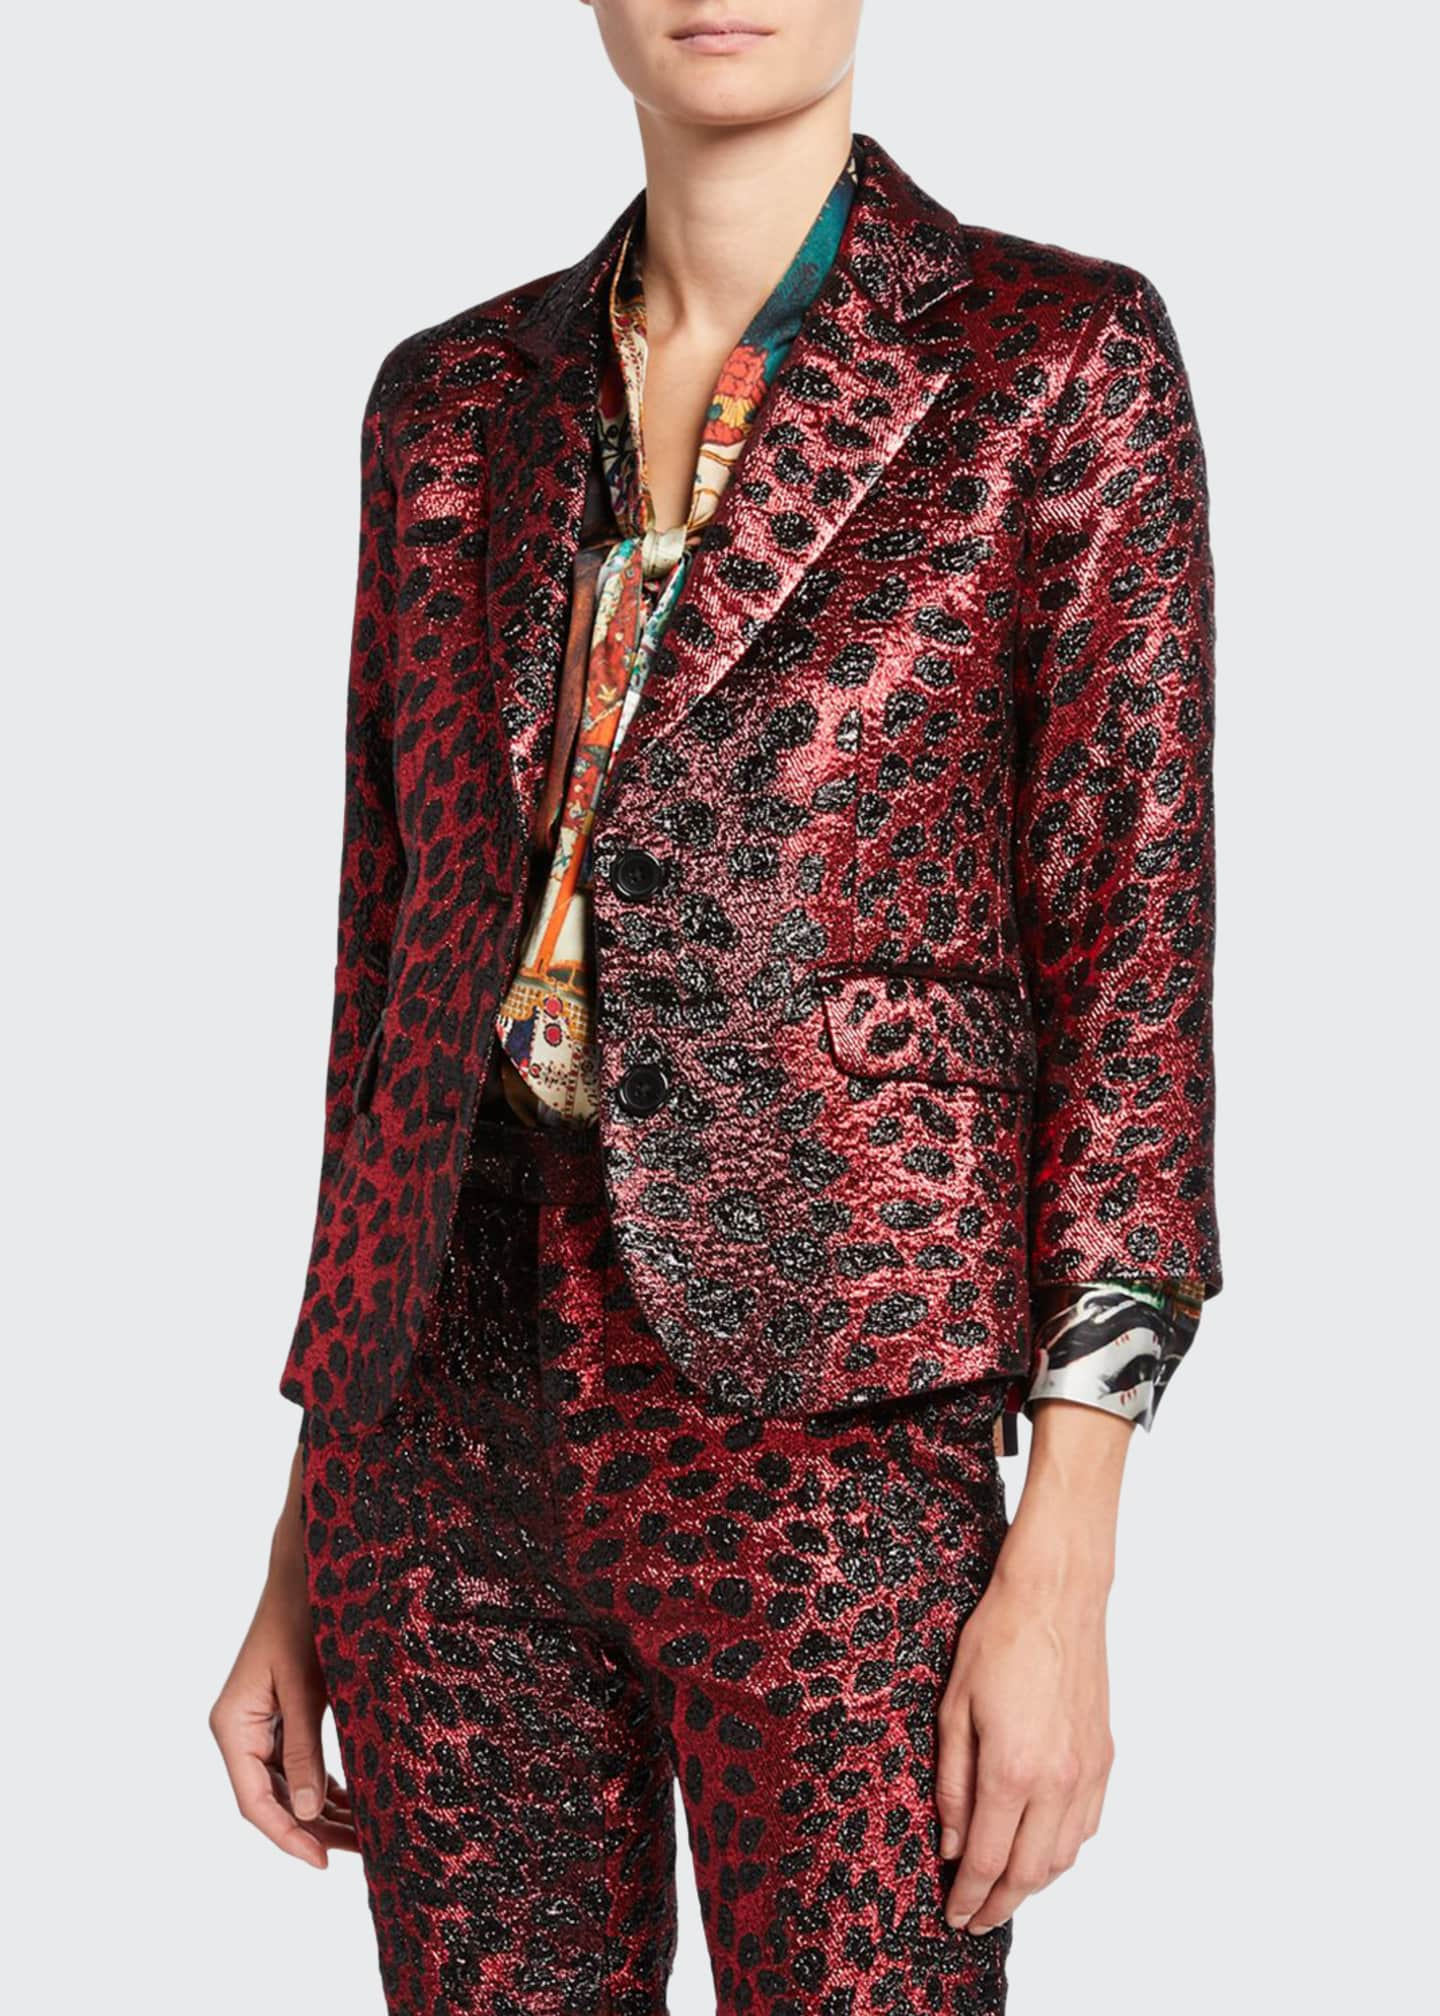 Libertine Metallic Cat Glittery Cheetah-Print Blazer